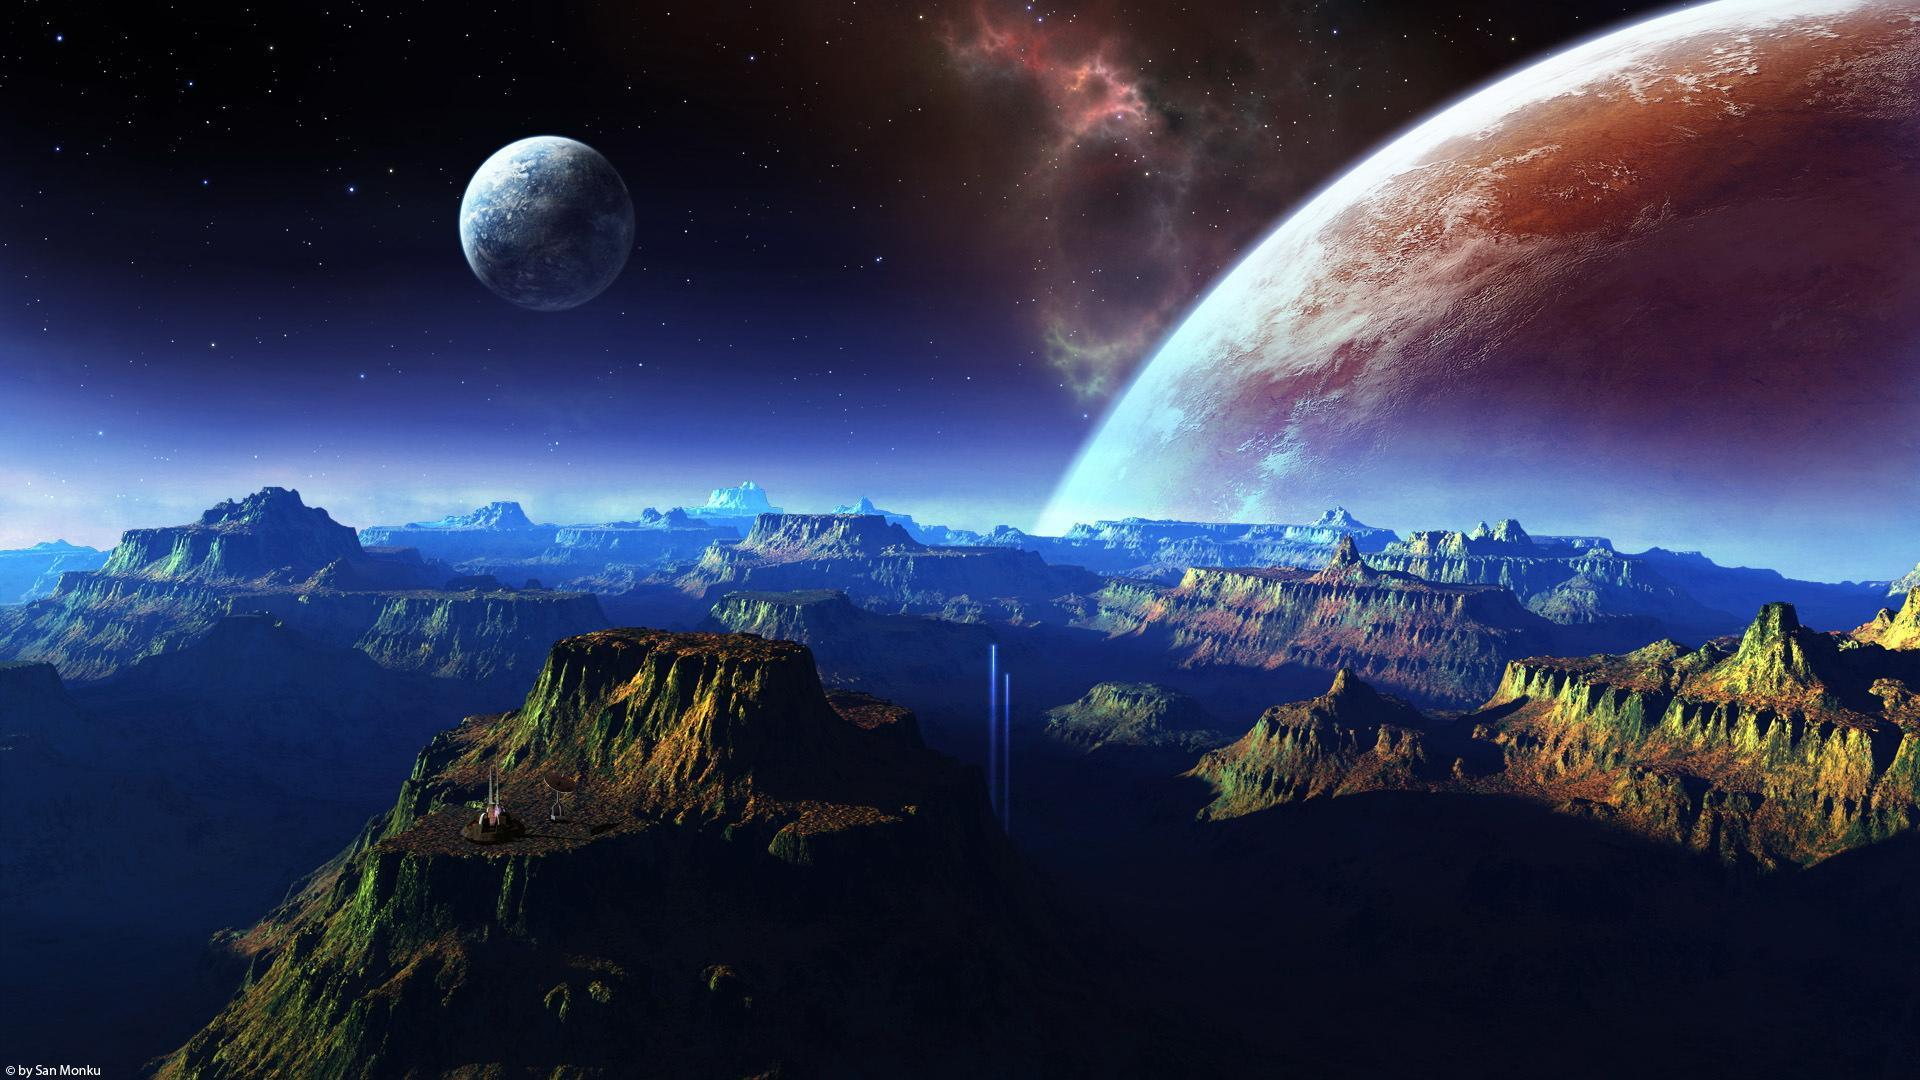 space 1080p wallpaper landscape - photo #38